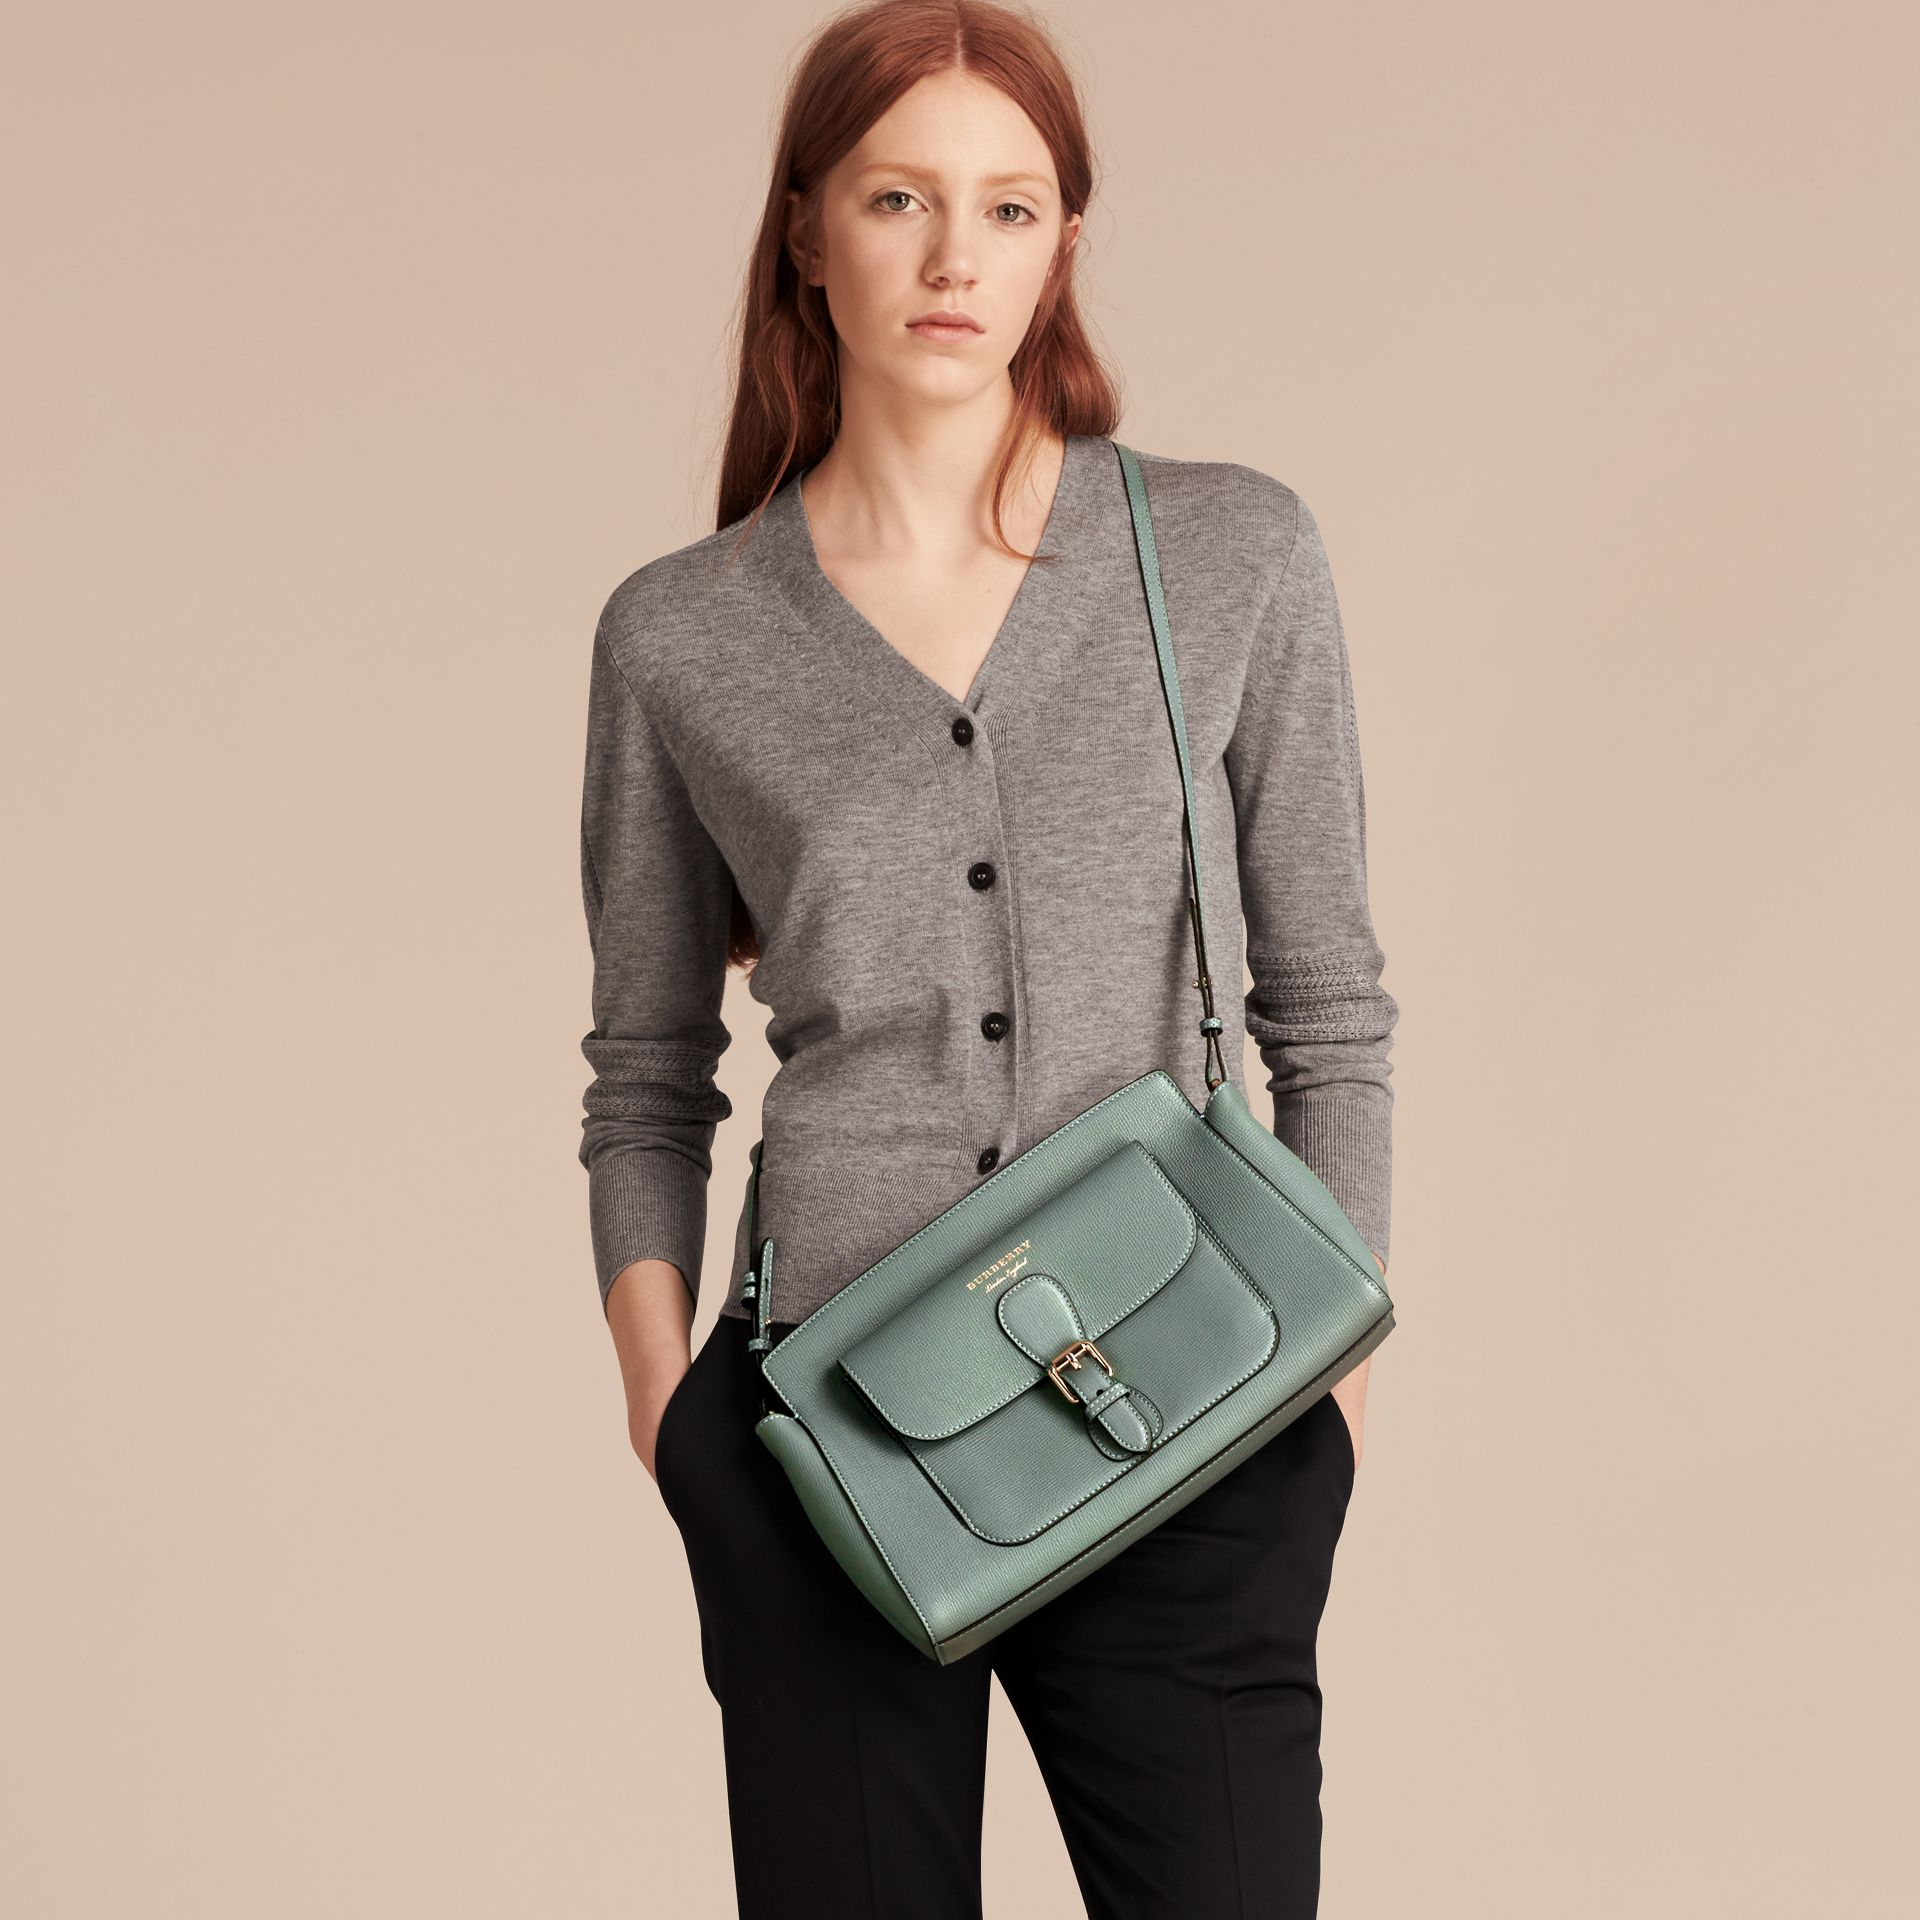 Smokey green The Saddle Clutch in Grainy Bonded Leather Smokey Green - gallery image 3